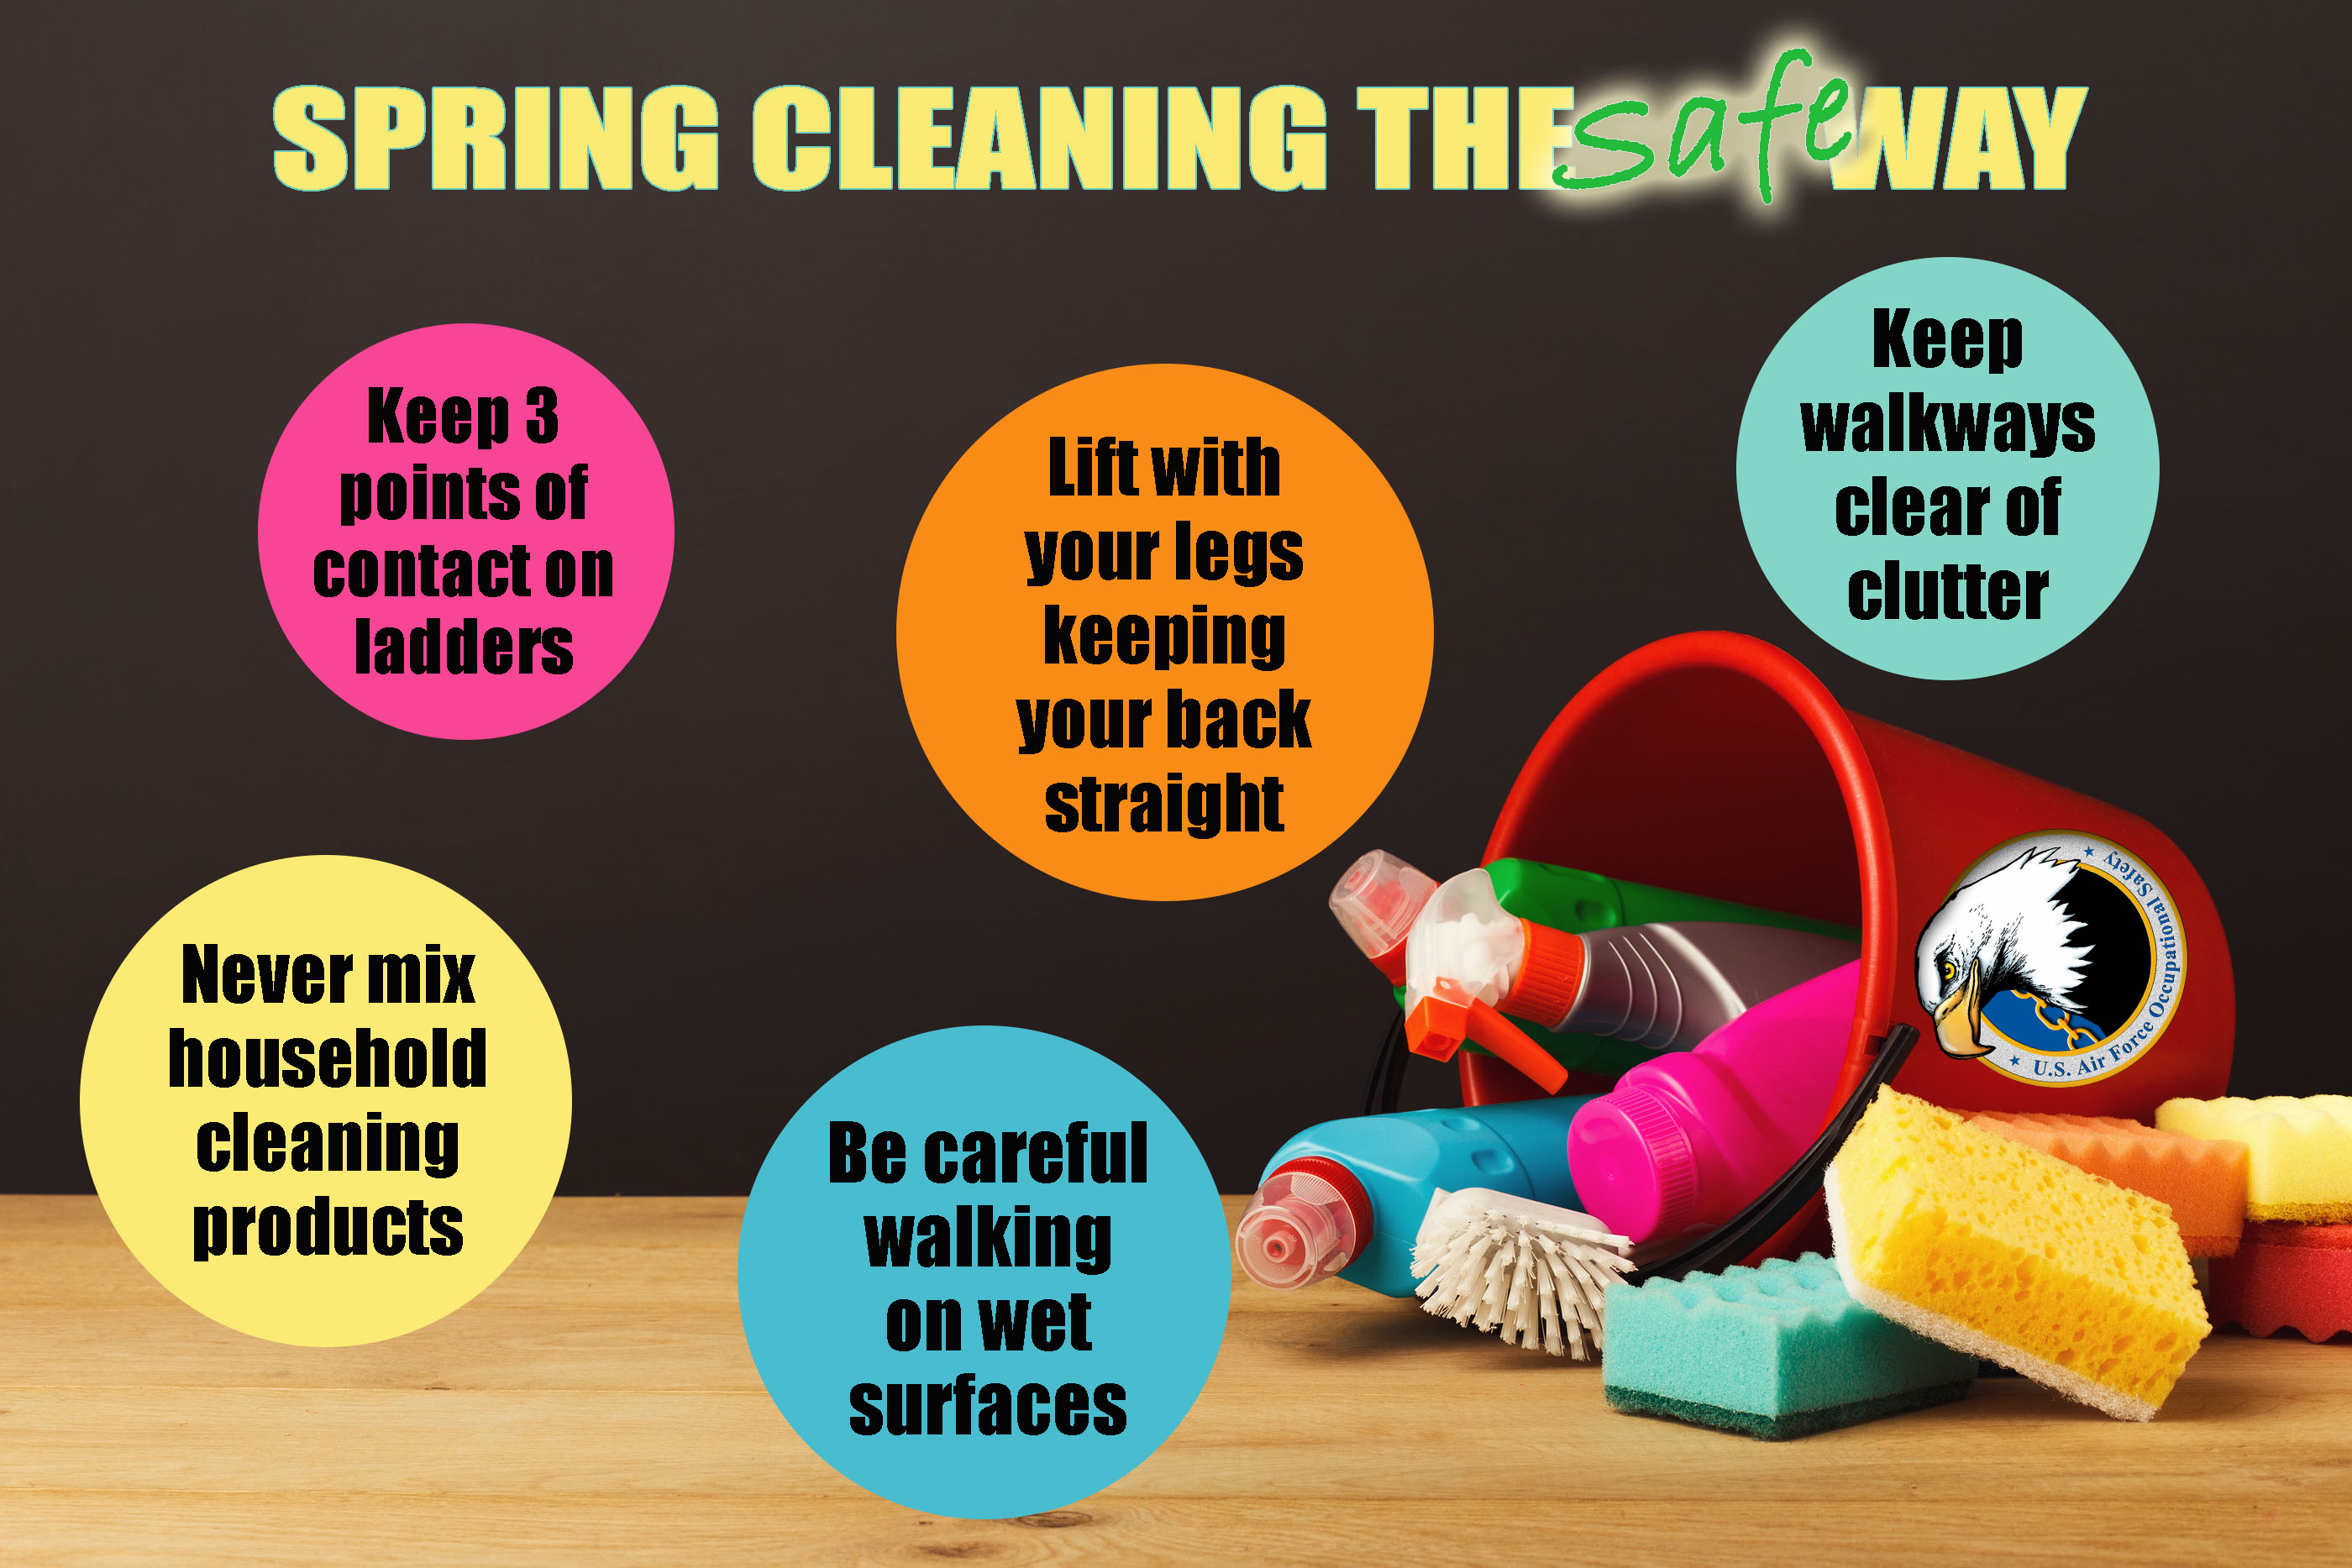 Spring Cleaning the safe way poster